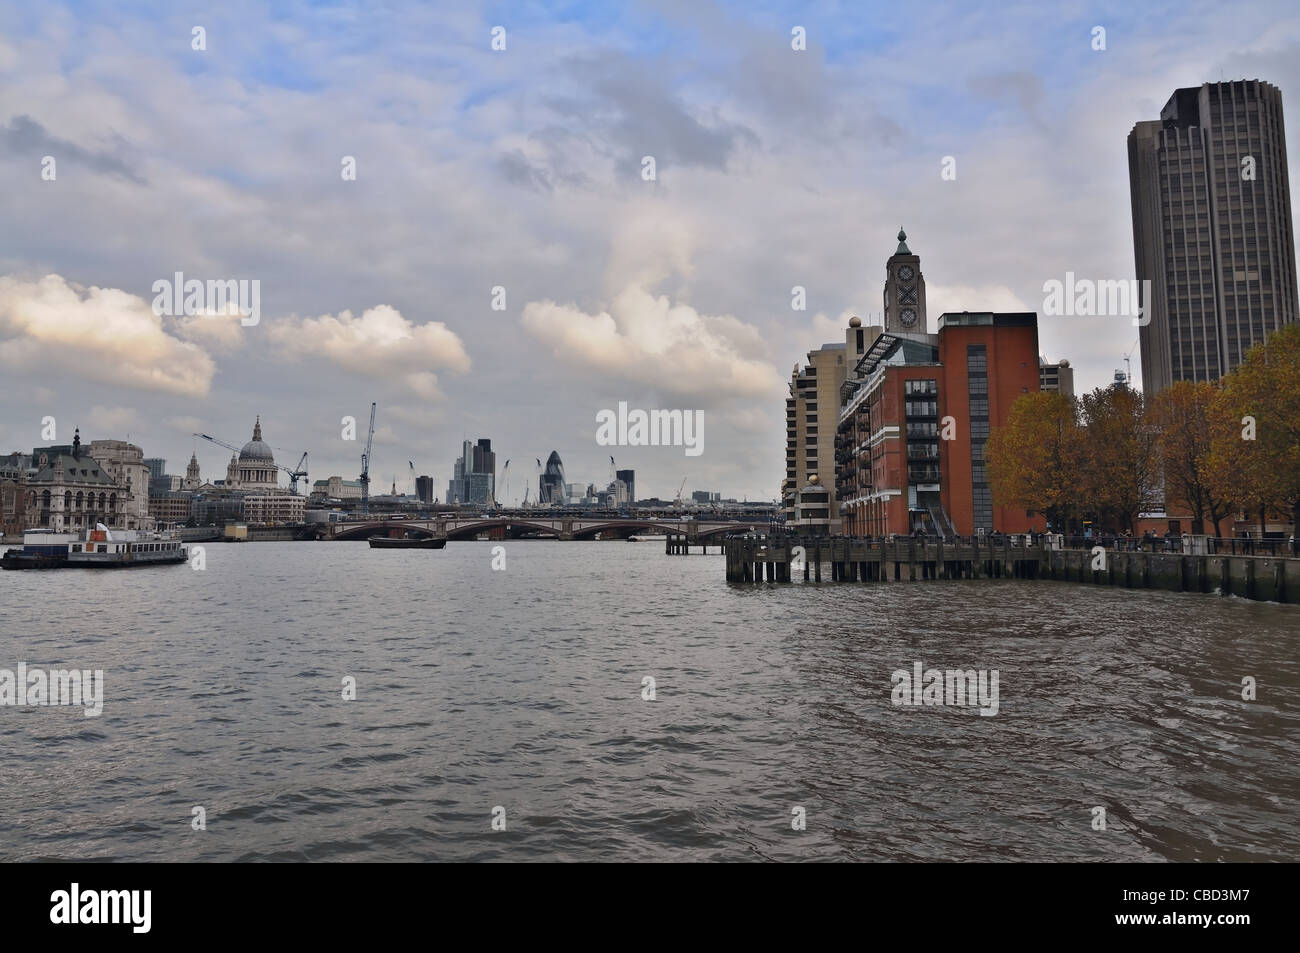 London: embankment of the River Thames - Stock Image